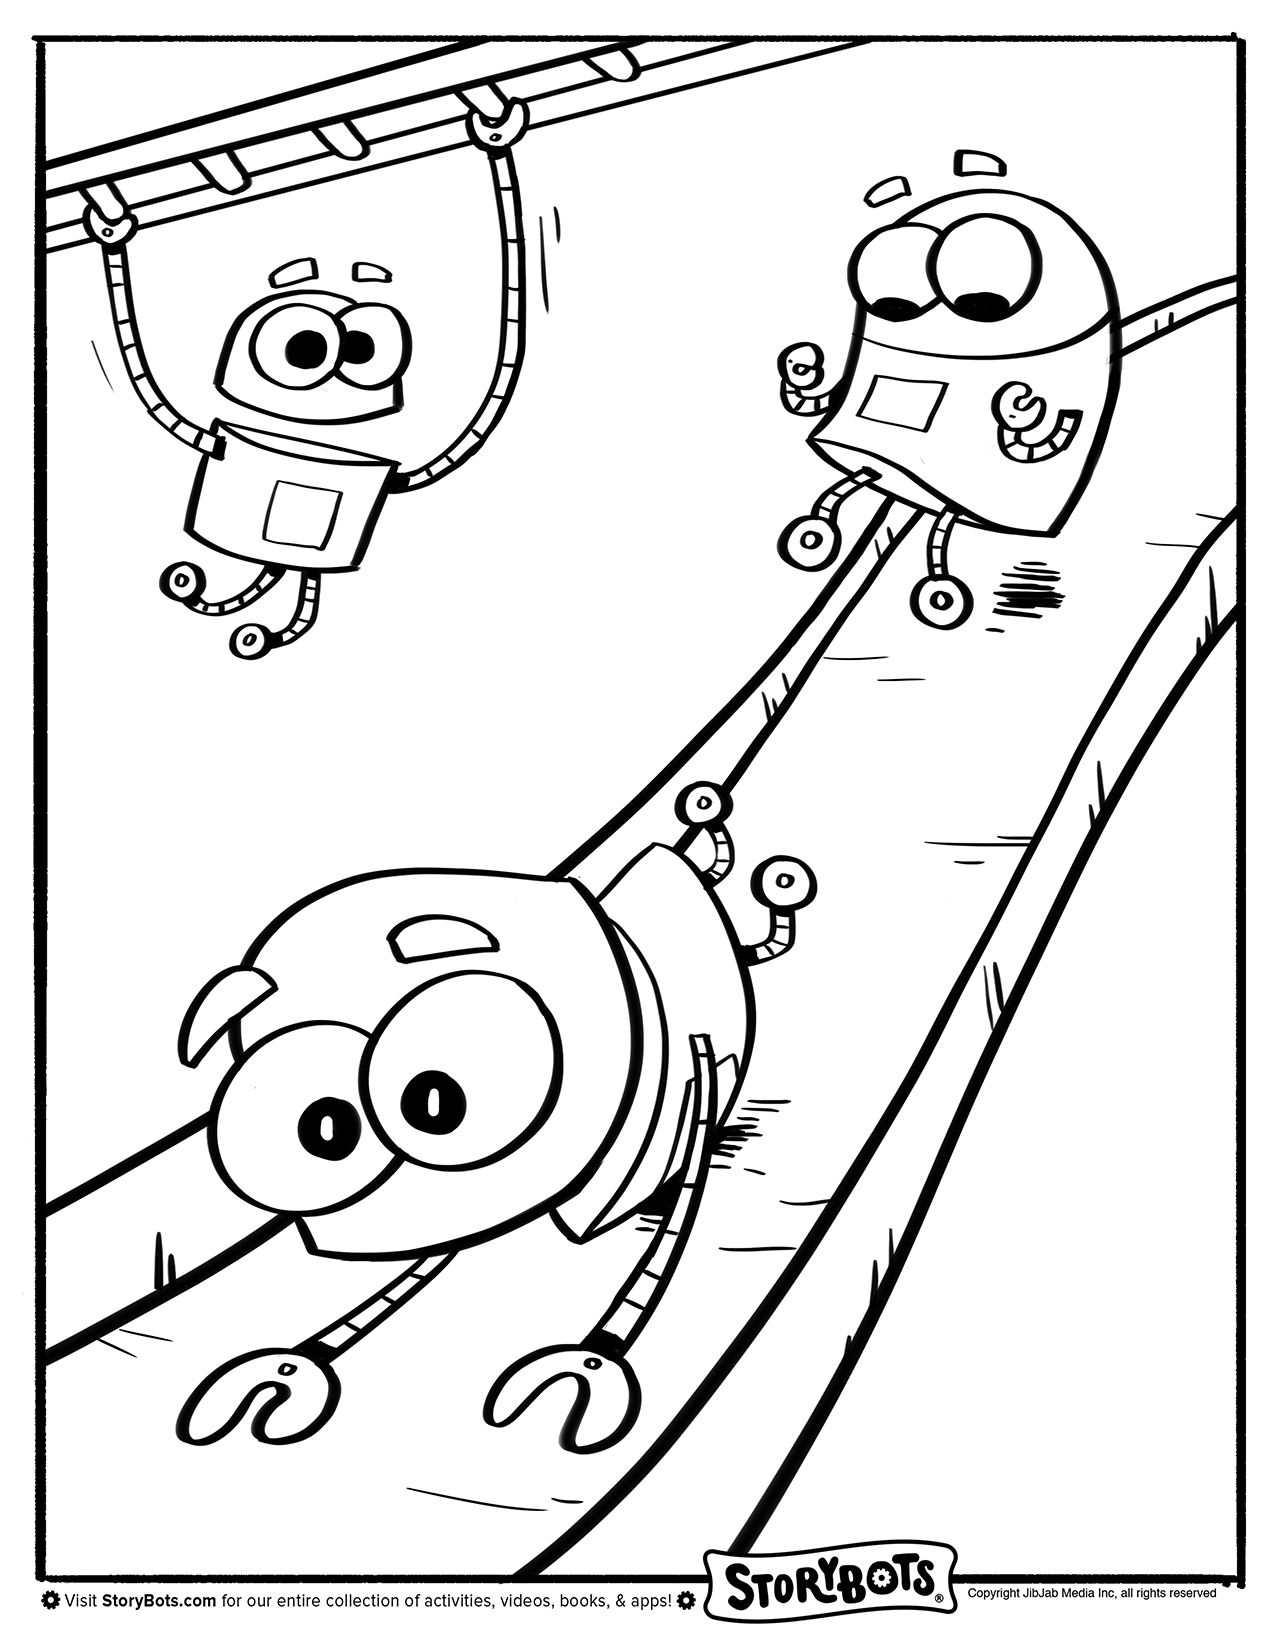 Coloring book page of a playground - Coloring Sheet Playground